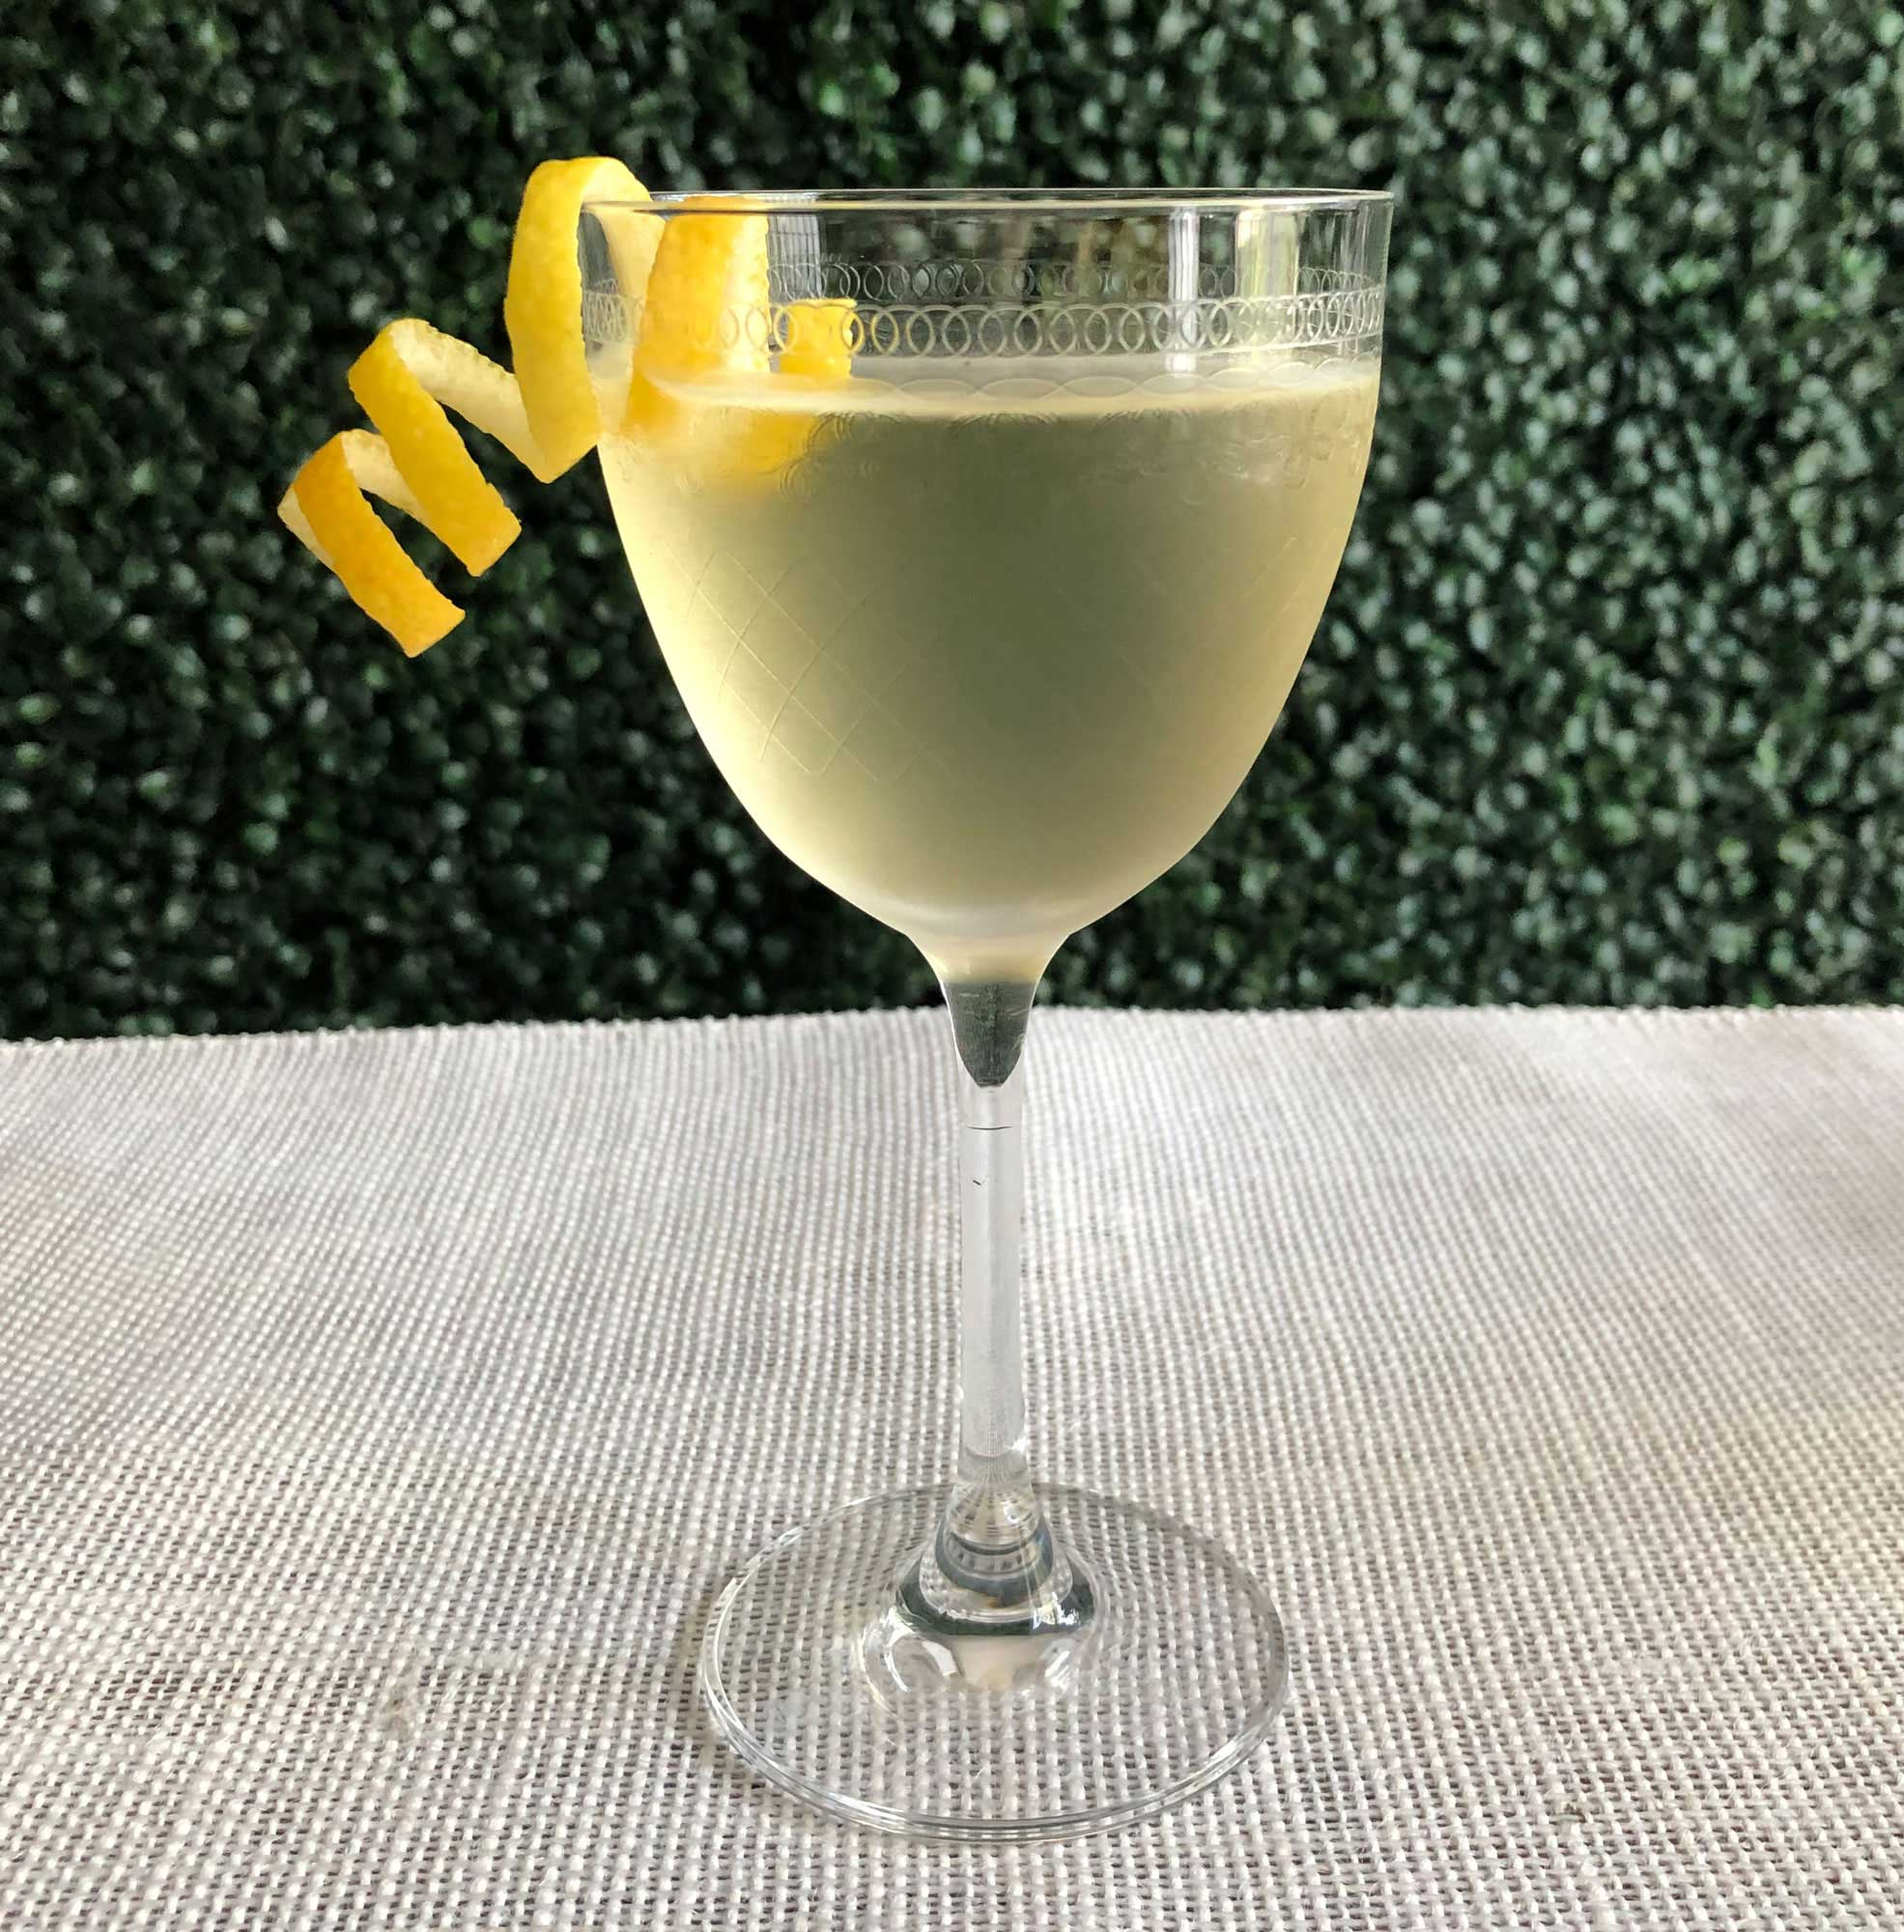 An example of the Parfait Parfait, the mixed drink (cocktail), by Kelly O'Hare, Austin, TX, featuring Hayman's London Dry Gin, Comoz Vermouth Blanc, and Mattei Cap Corse Blanc Quinquina; photo by Lee Edwards